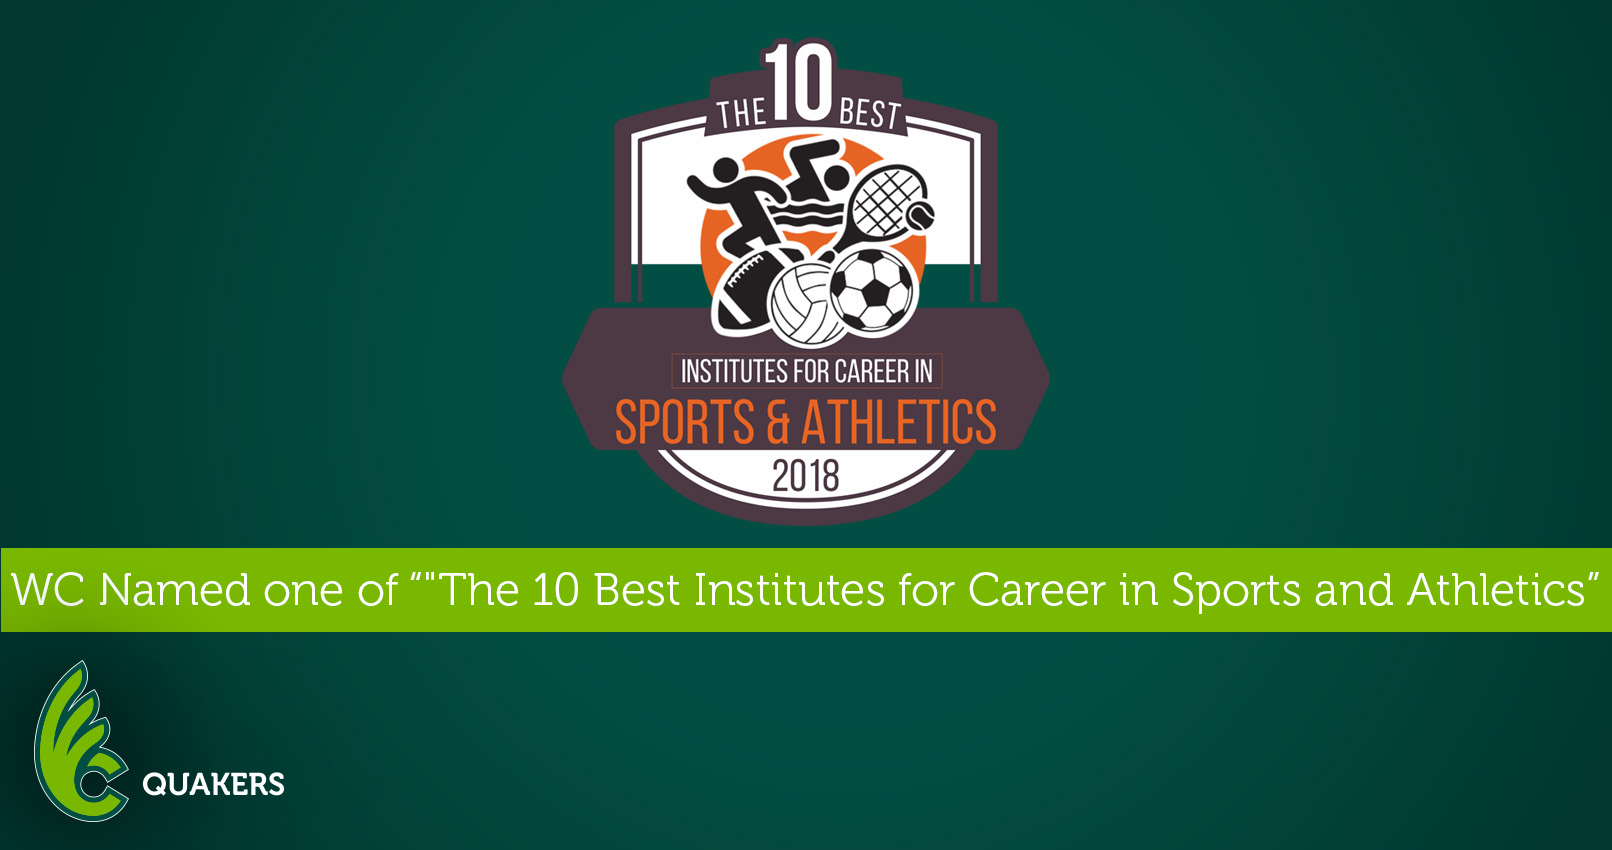 "Wilmington Named One of ""The 10 Best Institutions for Careers in Sports and Athletics in 2018"""